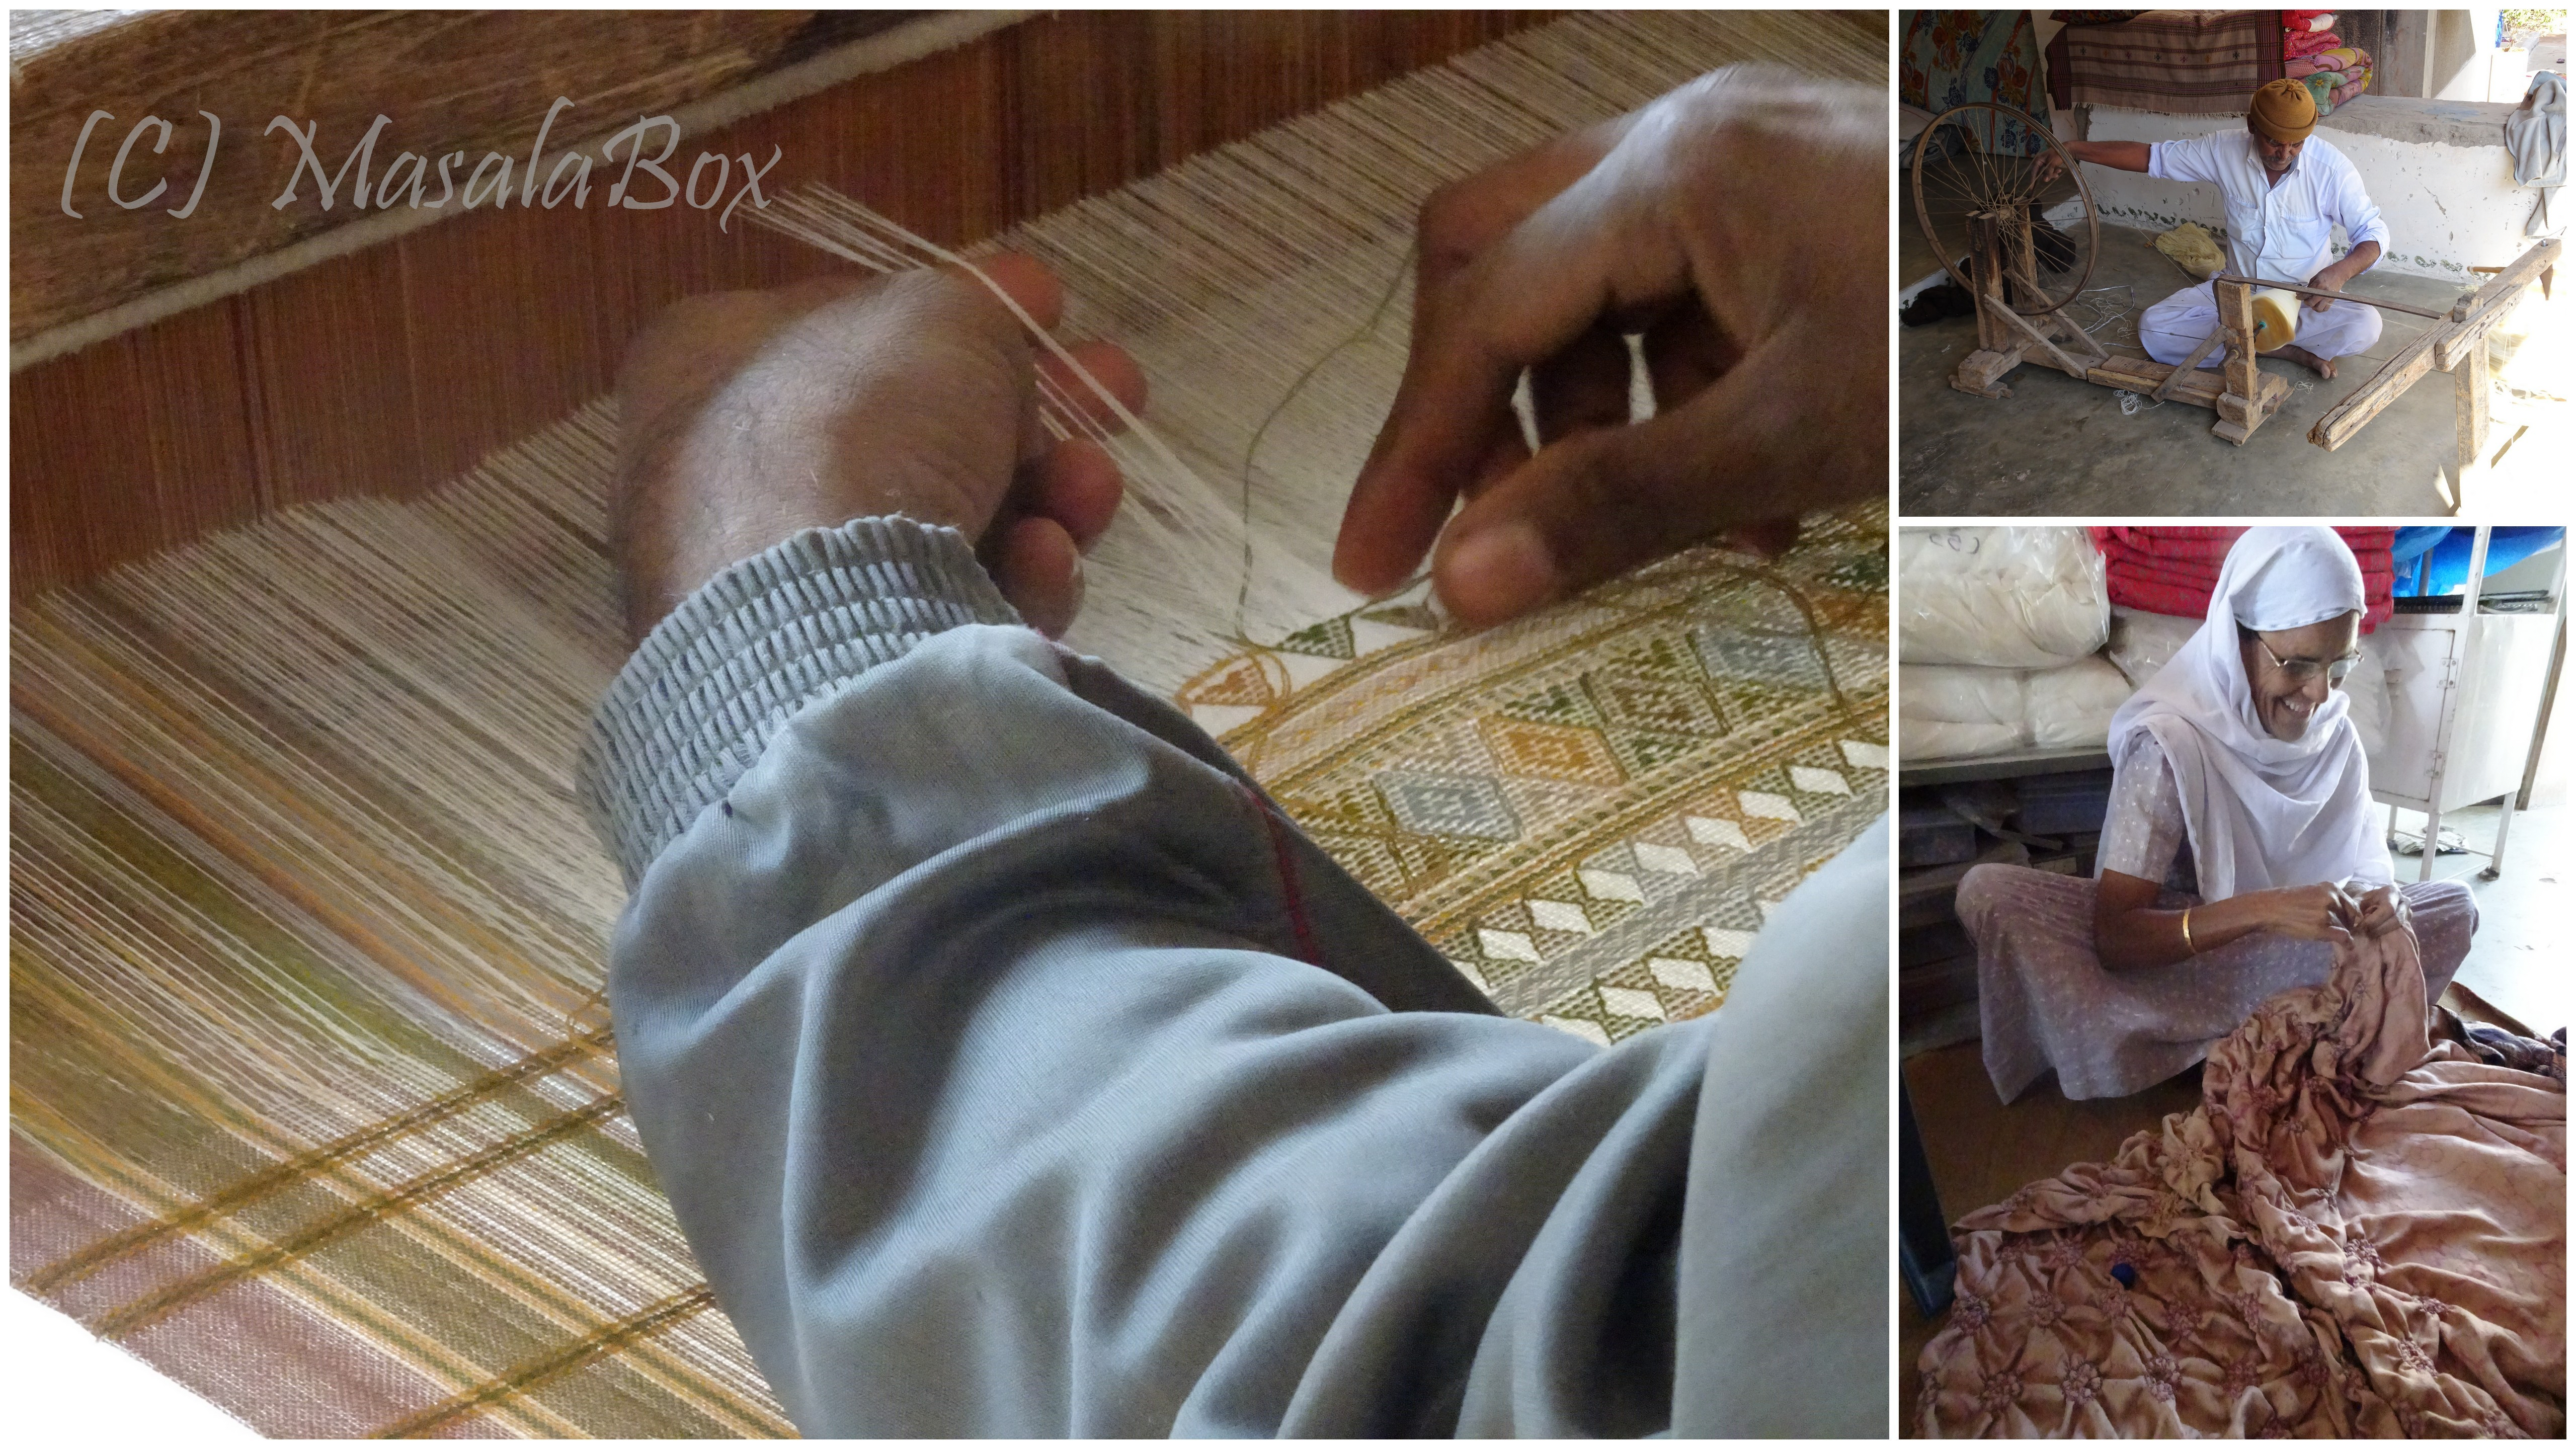 Weaver at work, spinning thread and a woman doing bhandani work